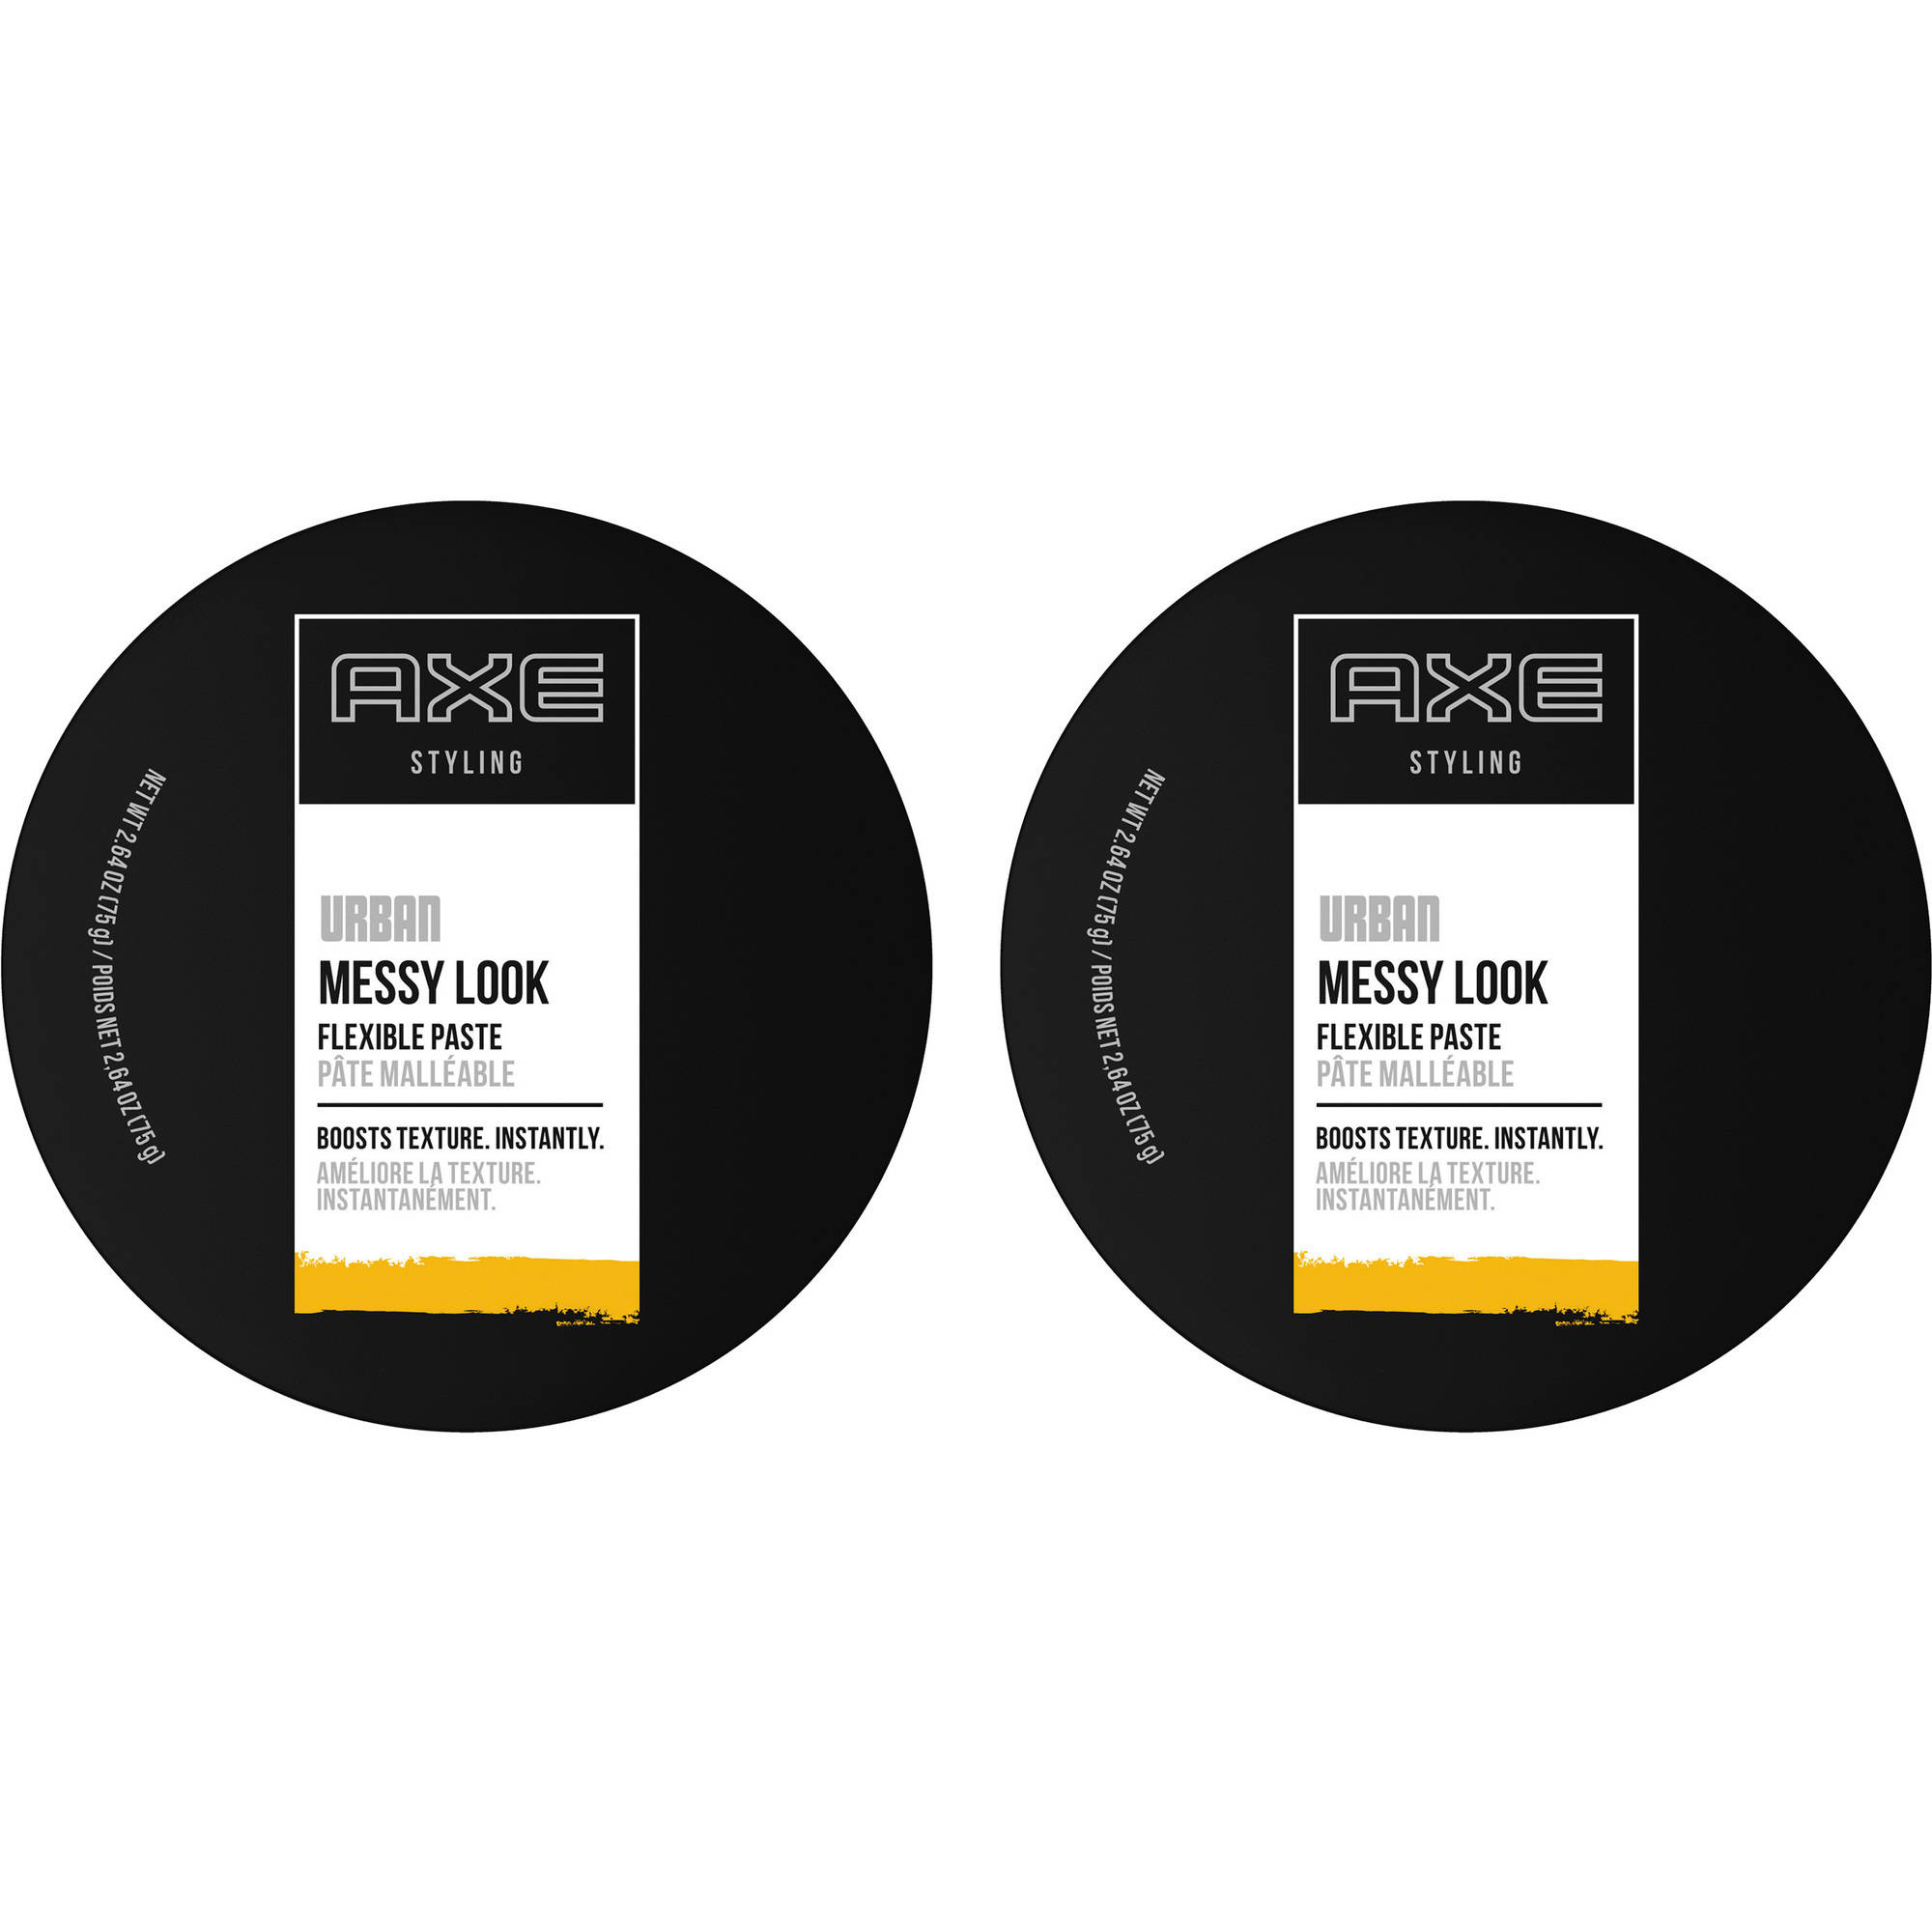 AXE Messy Look Flexible Hair Paste, 2.64 oz, 2 Count